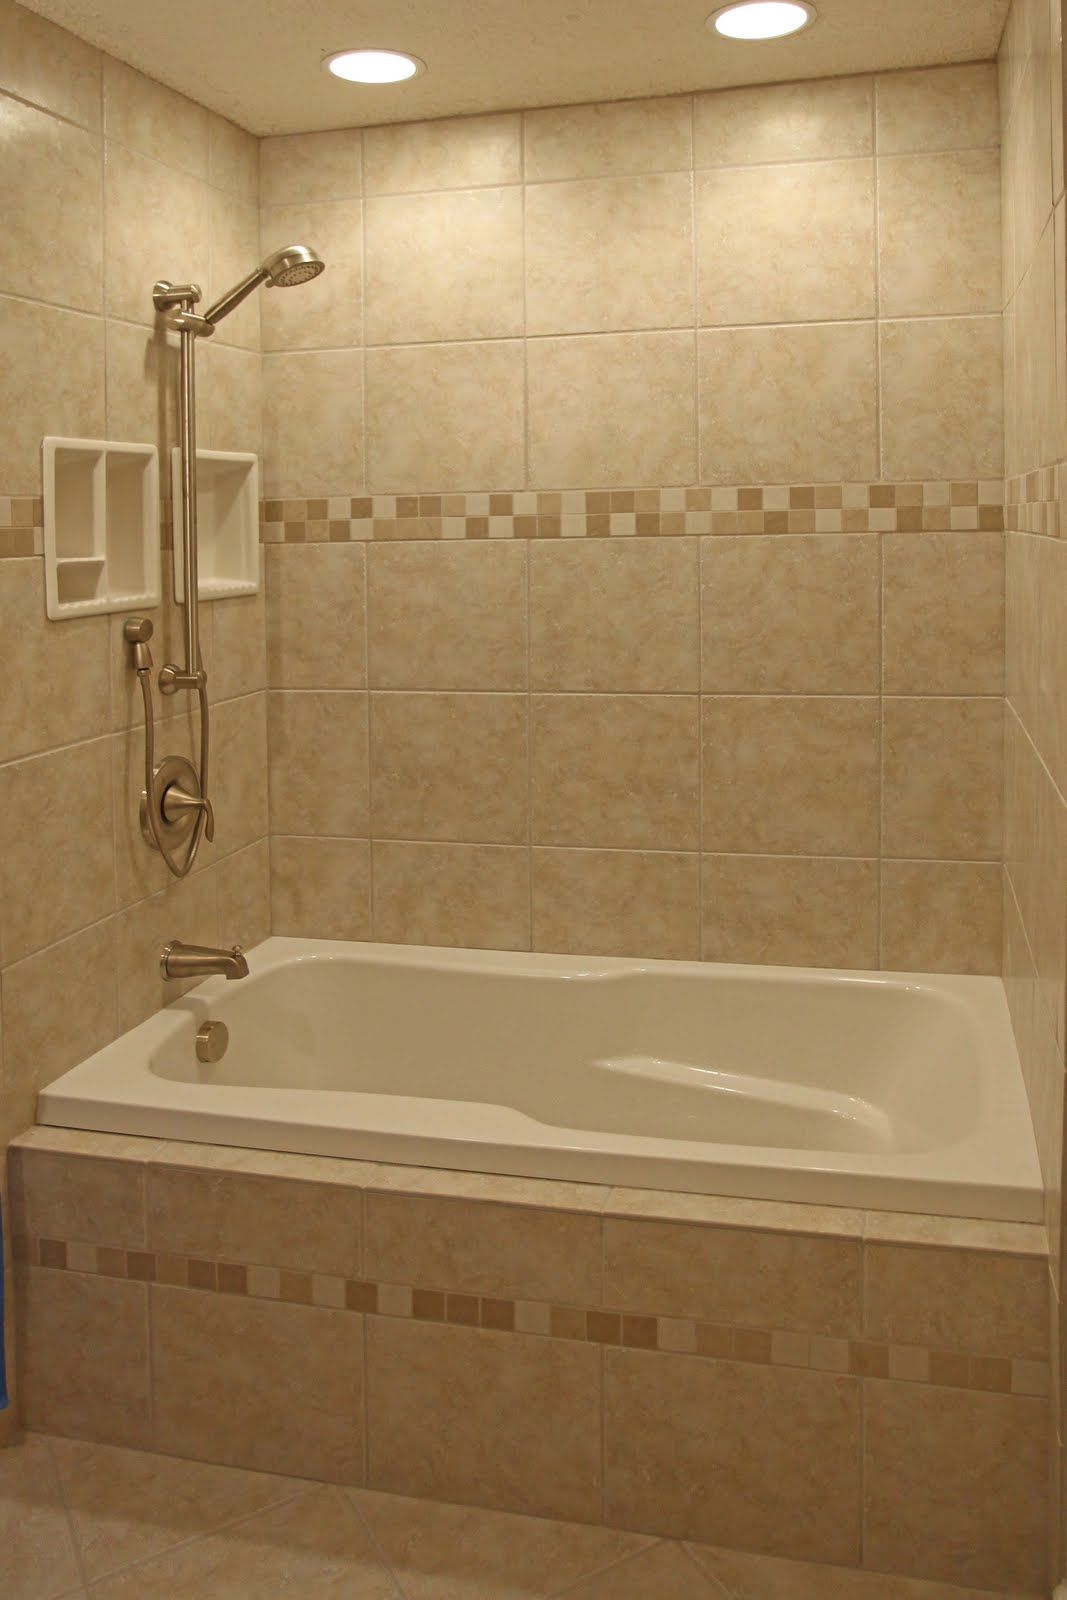 shower and bath remodel bathroom shower design ideas ceramic tile bathroom shower design - Bath Shower Tile Design Ideas